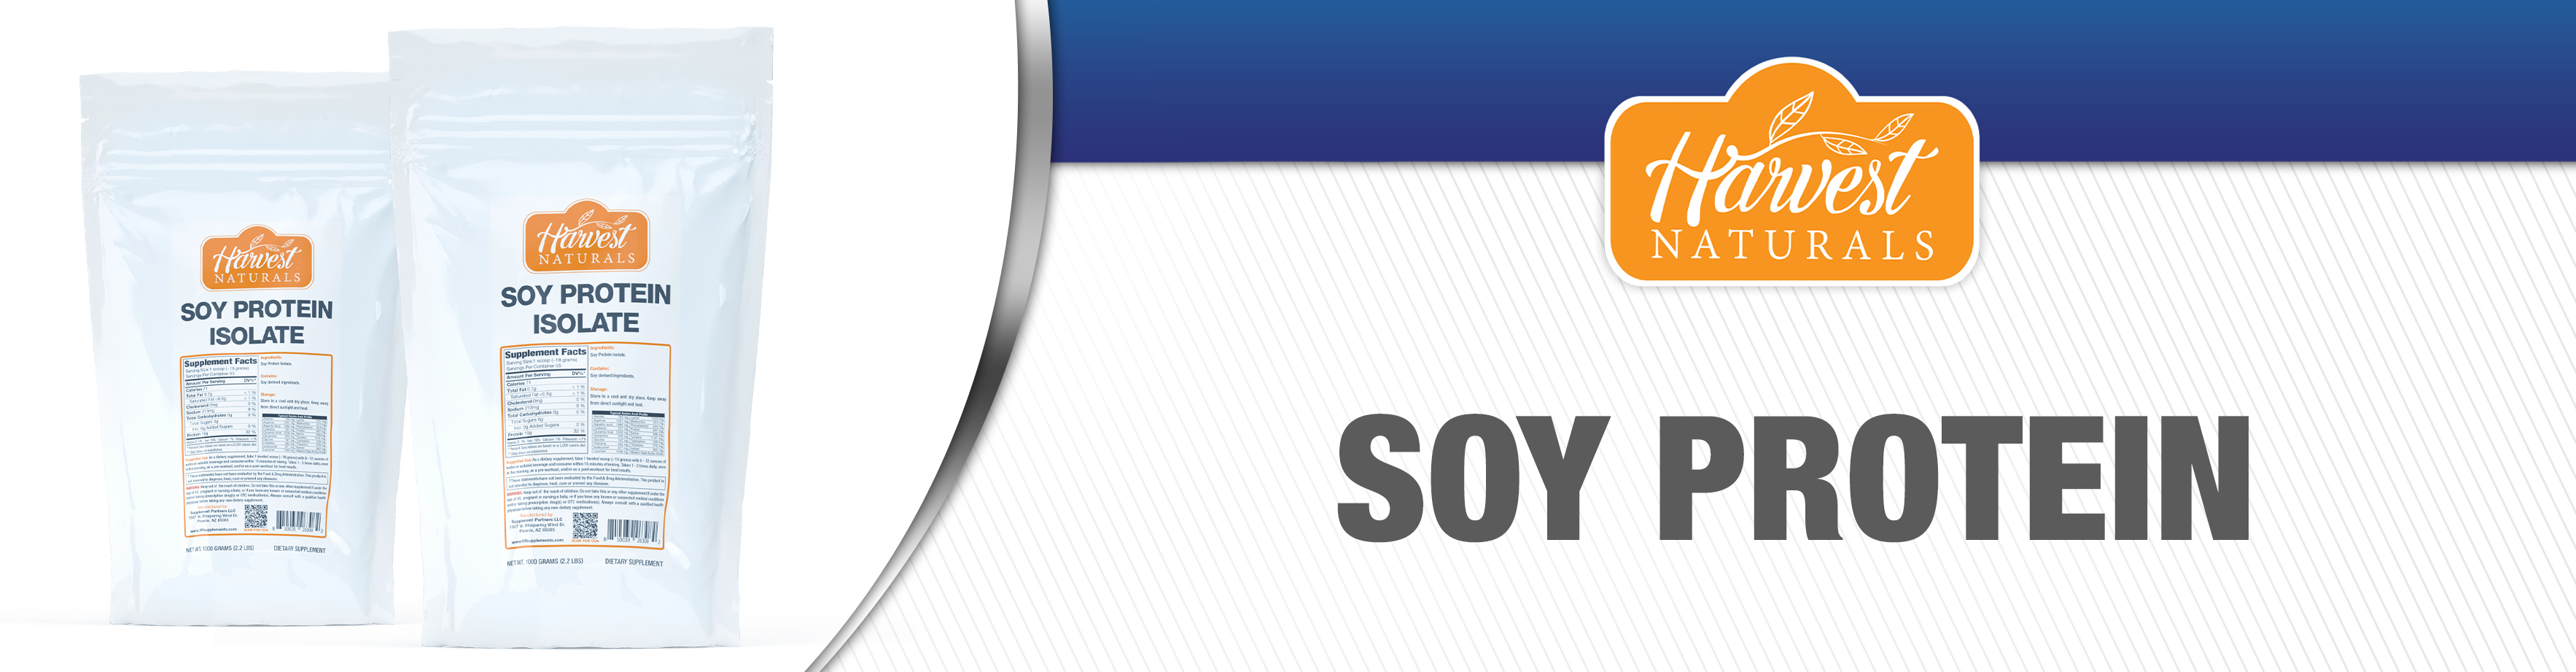 soy-protein-isolate-10-21.jpg